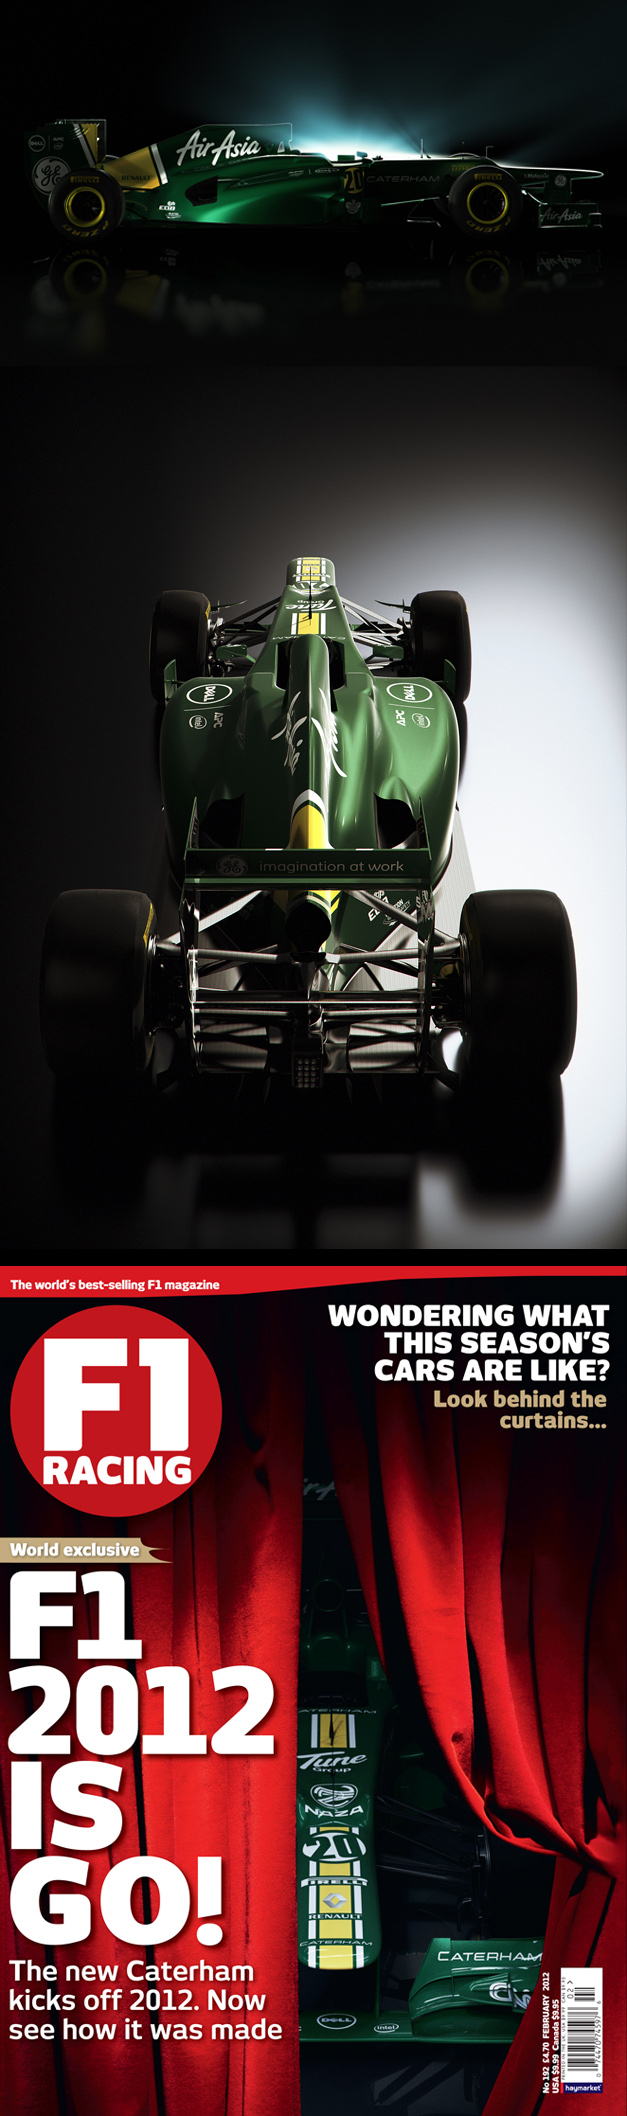 Peter Crowther / Caterham F1 / F1 Magazine